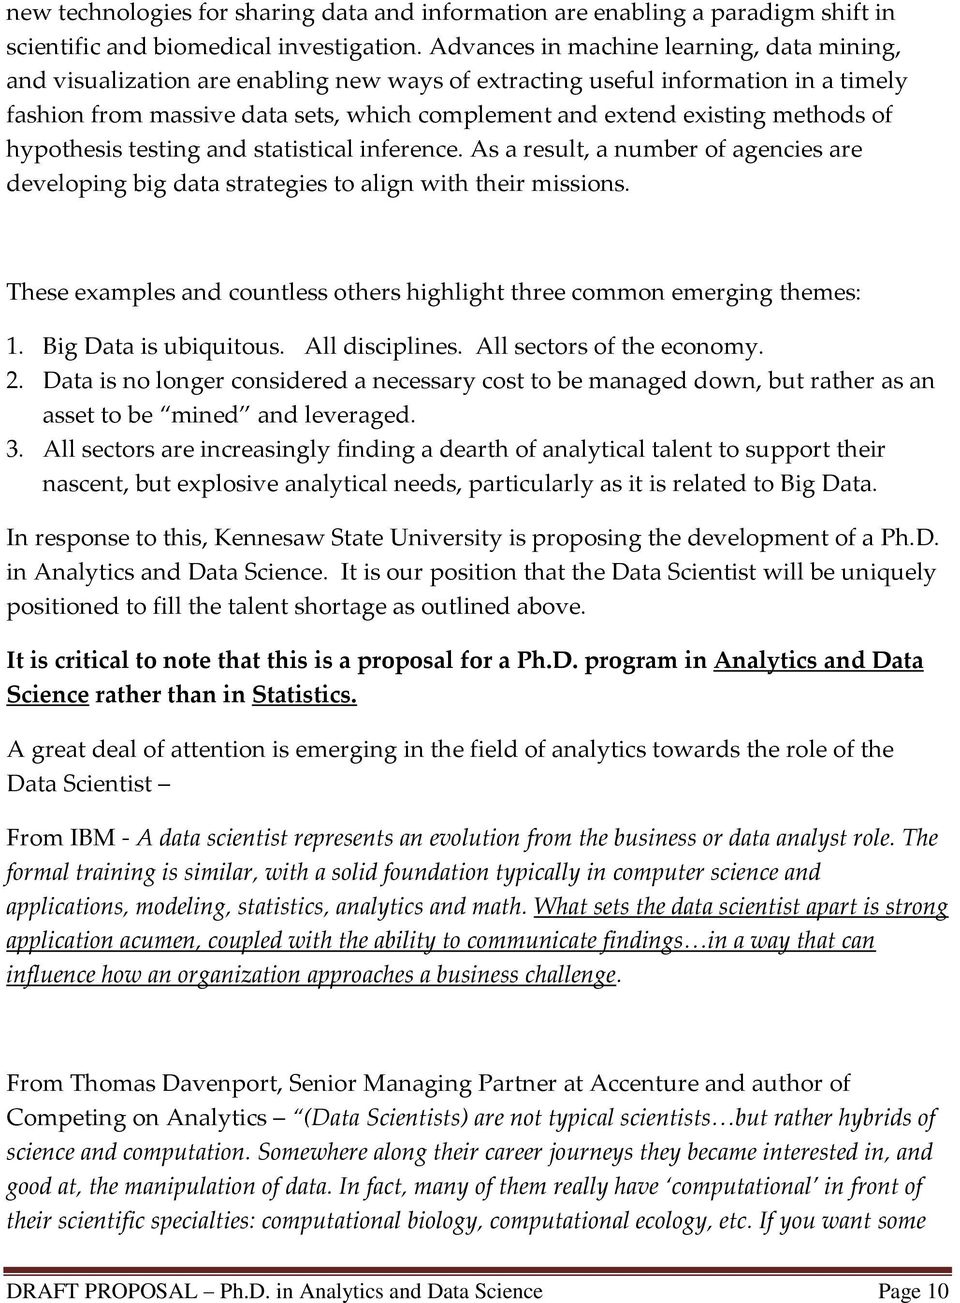 methods of hypothesis testing and statistical inference. As a result, a number of agencies are developing big data strategies to align with their missions.